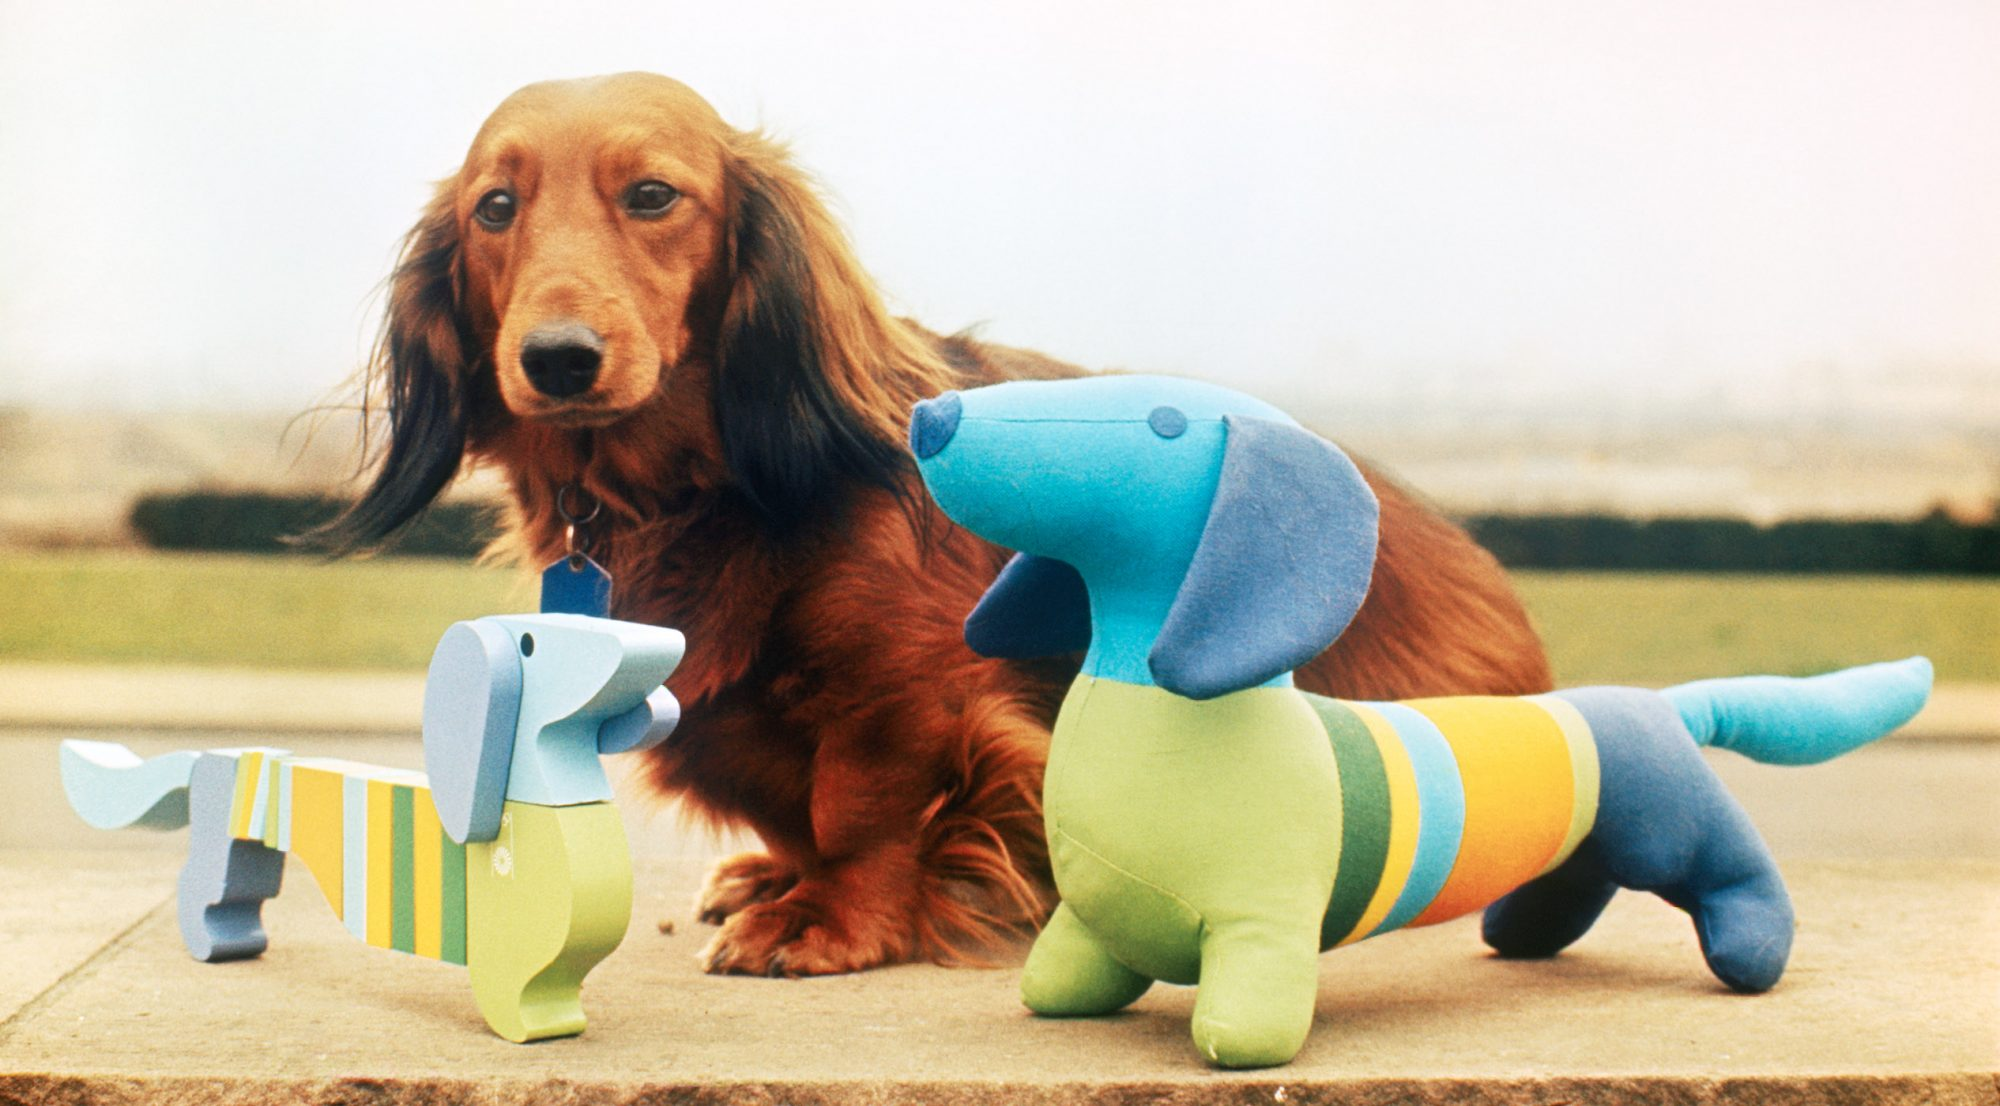 daschund posing with toy versions of Waldi the Olympic mascot